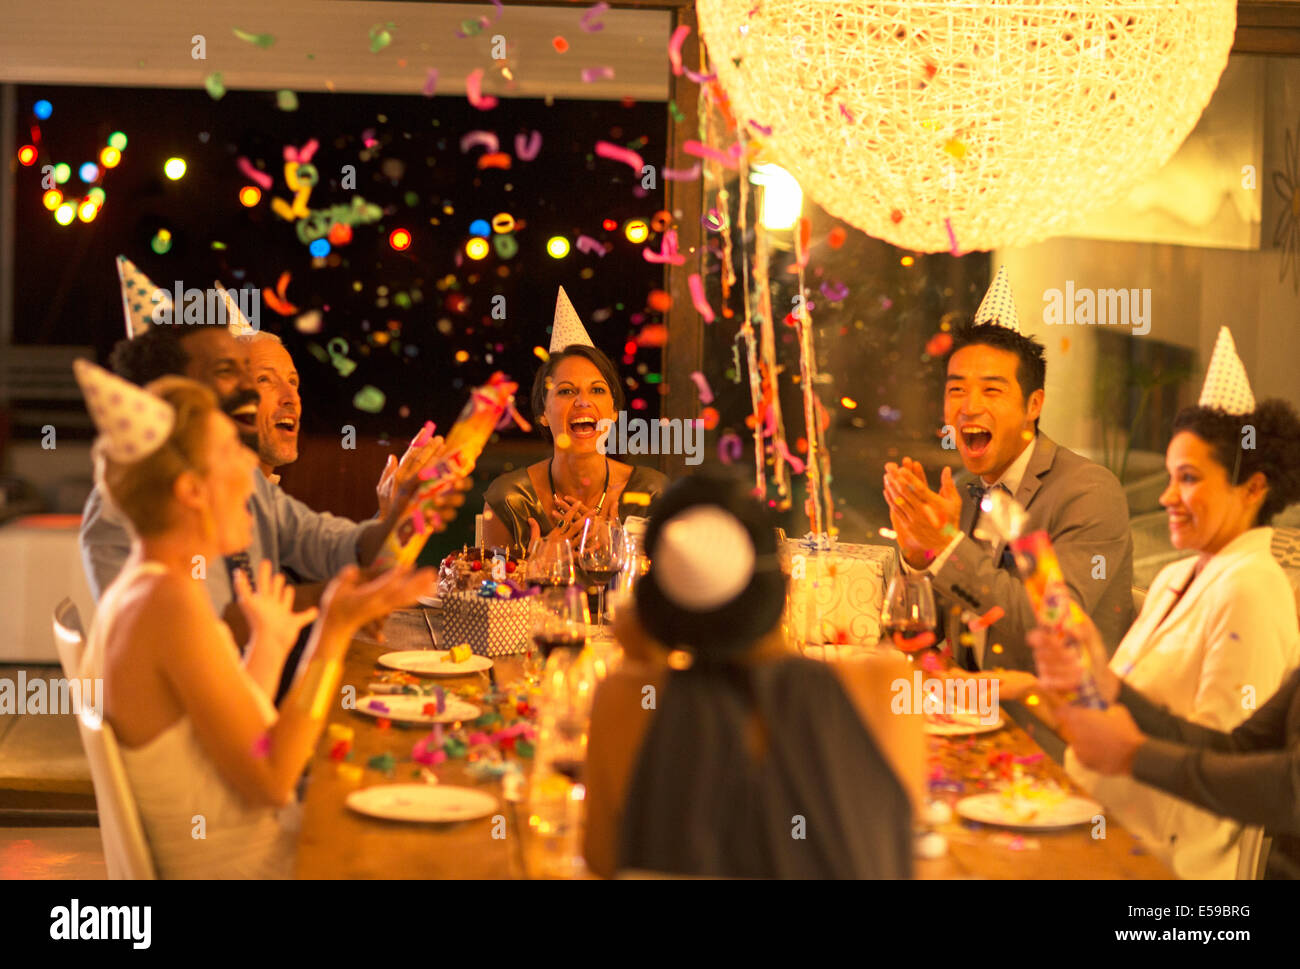 Friends throwing confetti at birthday party - Stock Image